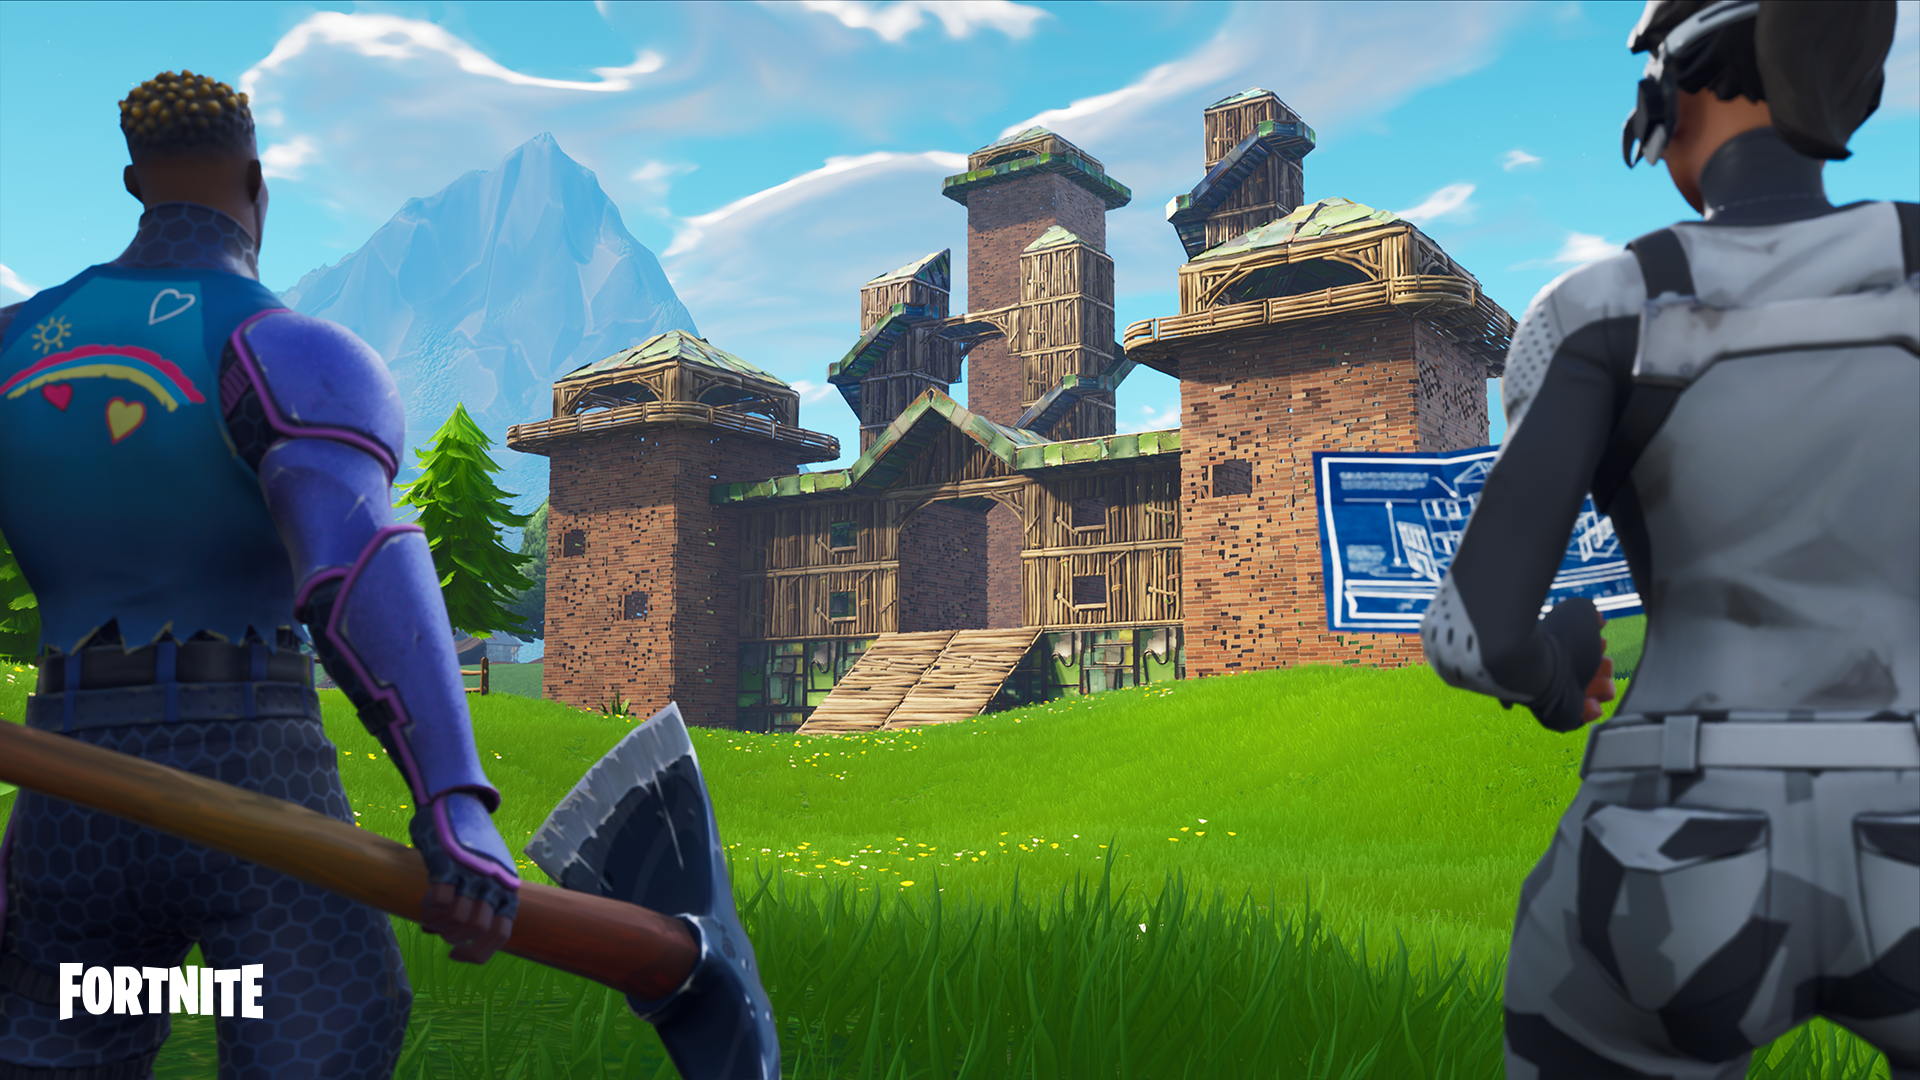 Fortnite%2Fpatch-notes%2Fv8-00%2Fcreative-header-v8-00%2FBR04_Social_Playground-1920x1080-b657b24b50ceff1724f487a63fa1800144190bfe.png